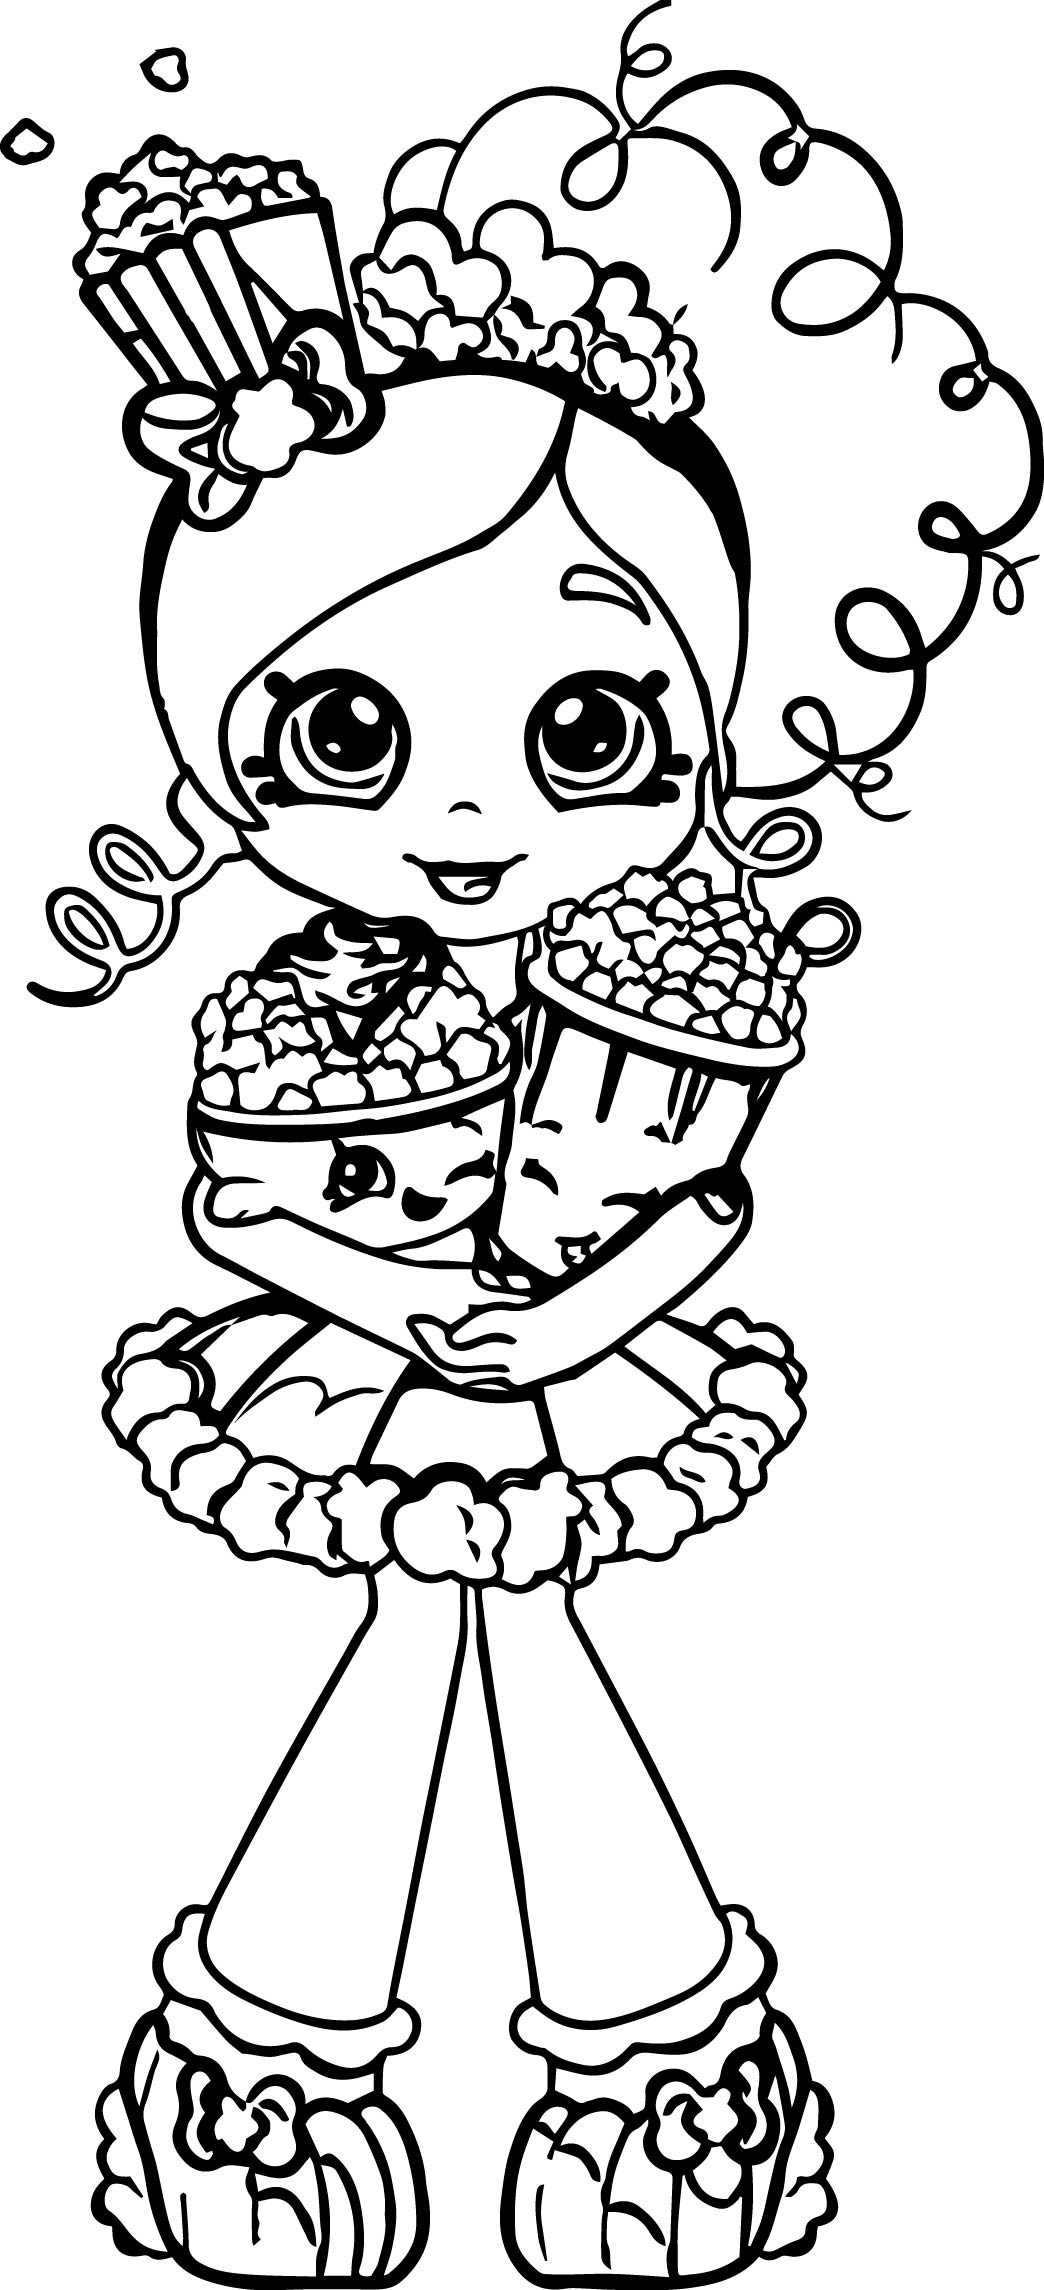 Best ideas about Coloring Pages For Girls Lds And Shopkins . Save or Pin Popcorn Shopkins Girl Coloring Page Now.